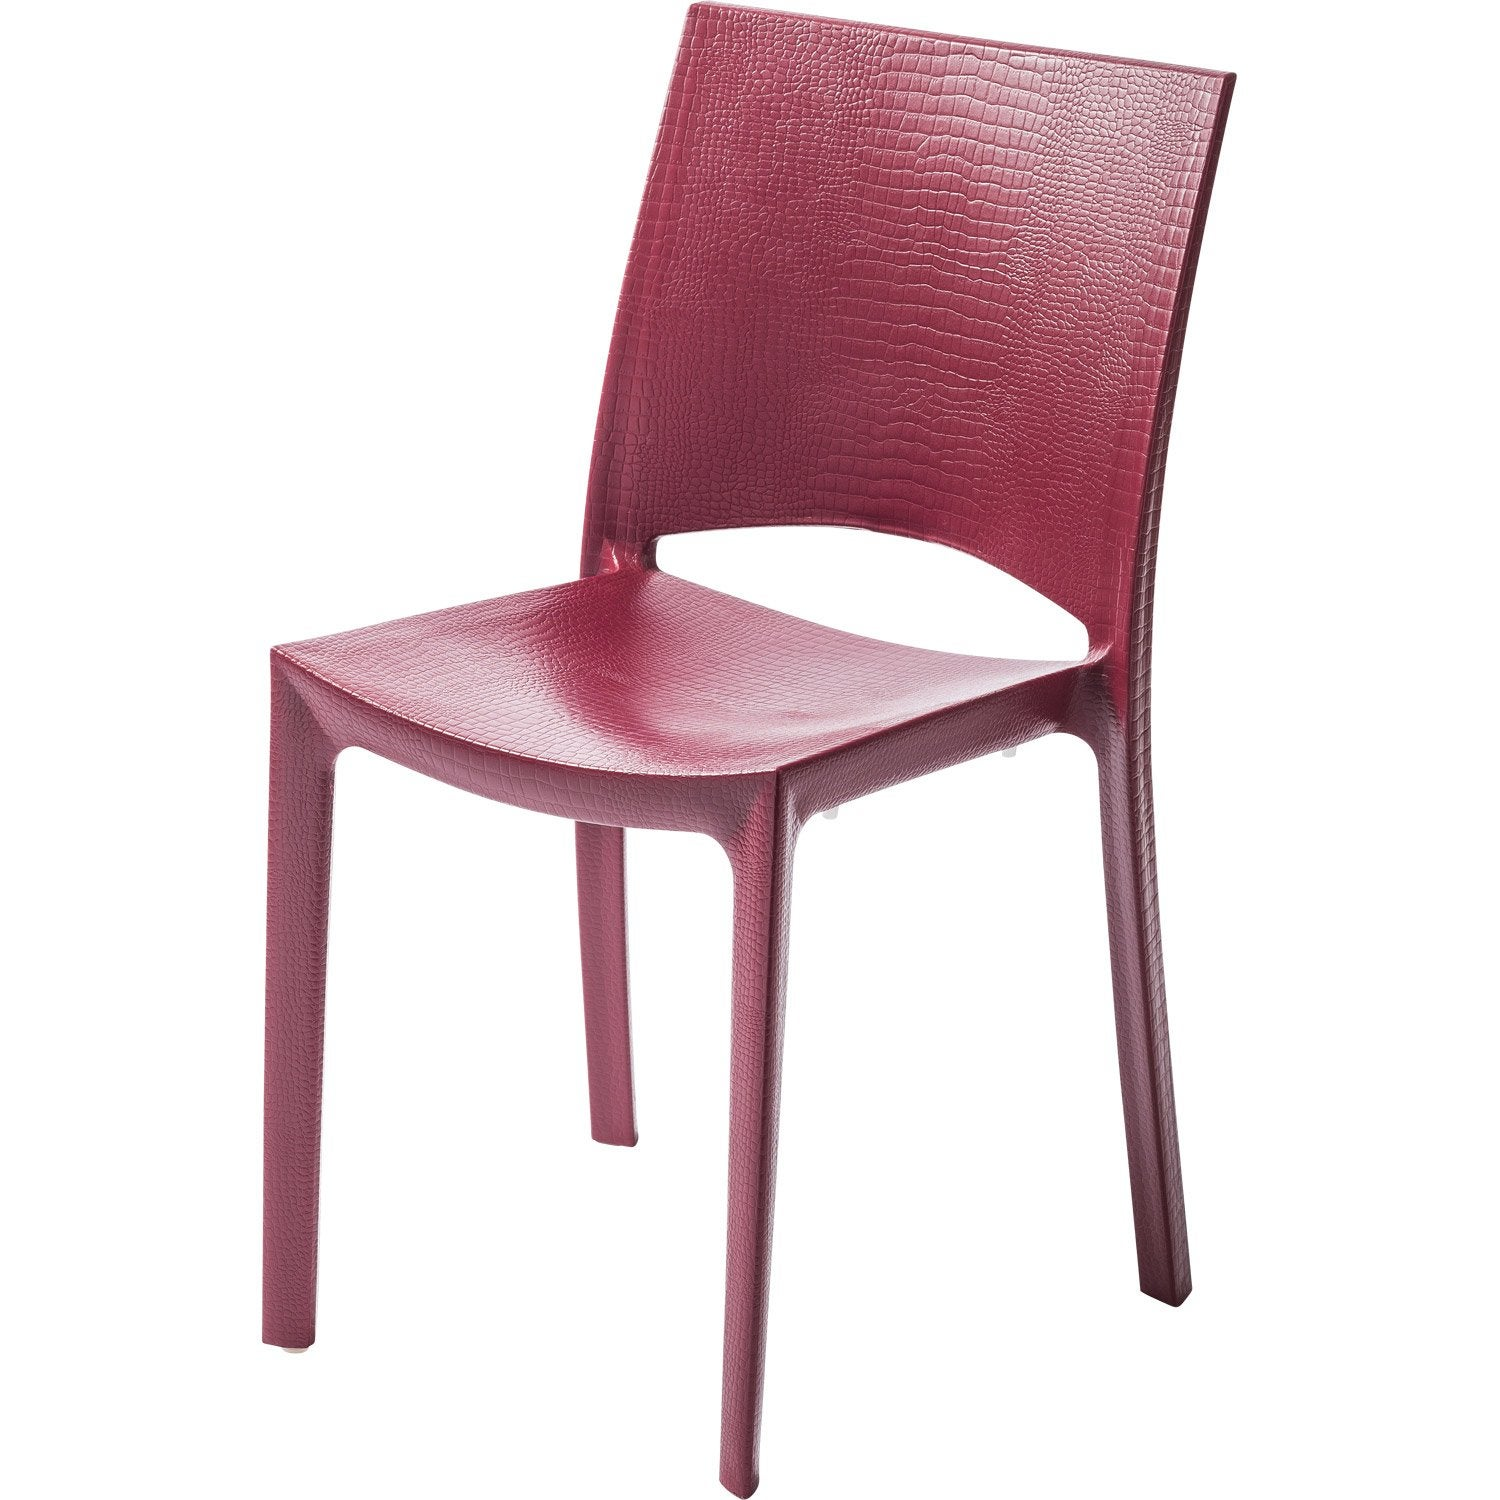 Chaise de jardin en r sine cocco rouge leroy merlin for Chaise jardin